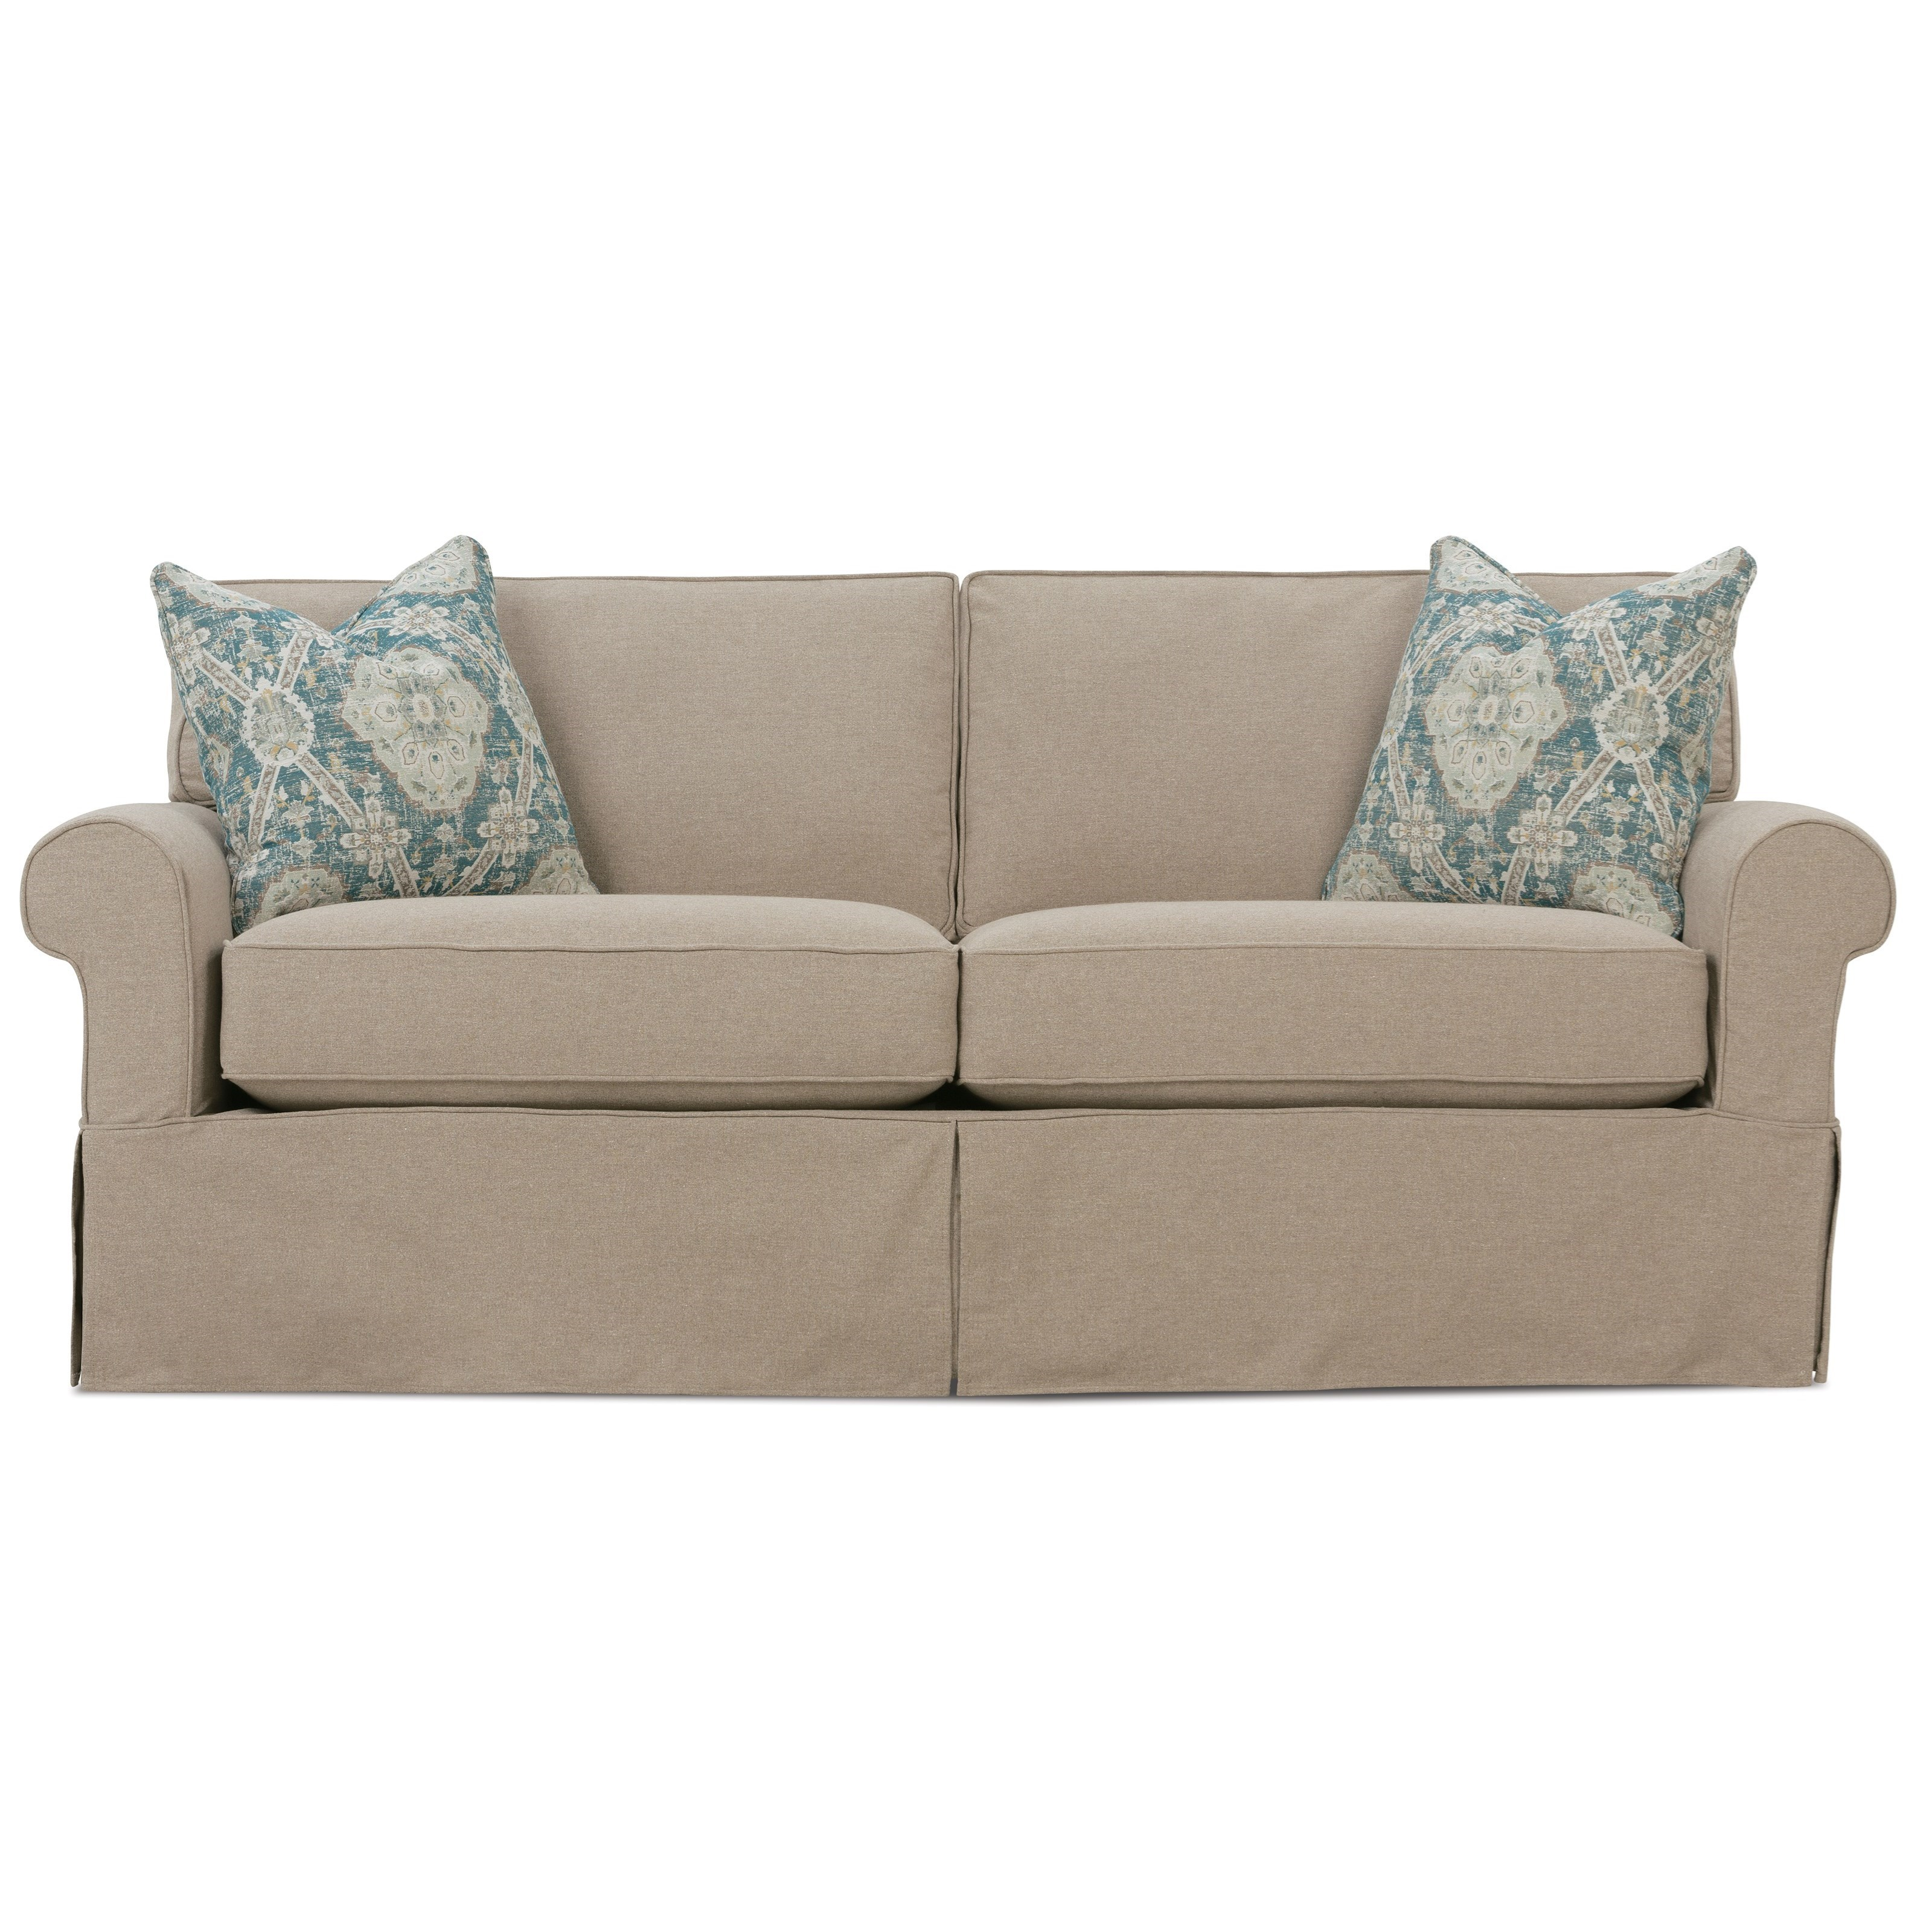 Rowe Nantucket Casual 2 Seat Slipcover Sofa Reeds